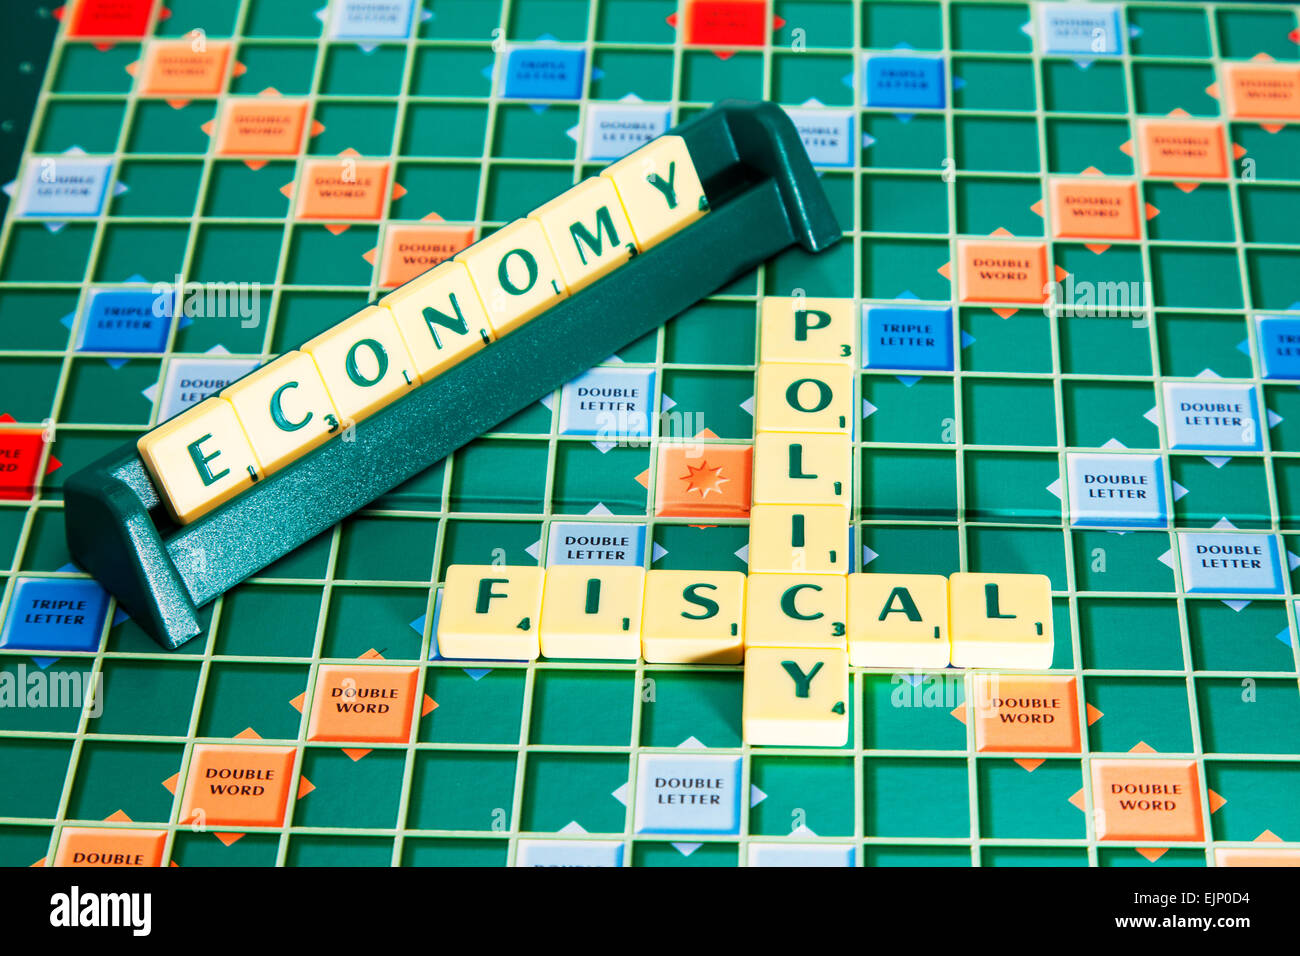 fiscal policy economy government election tax vat taxes raising words using scrabble tiles to illustrate spelling - Stock Image